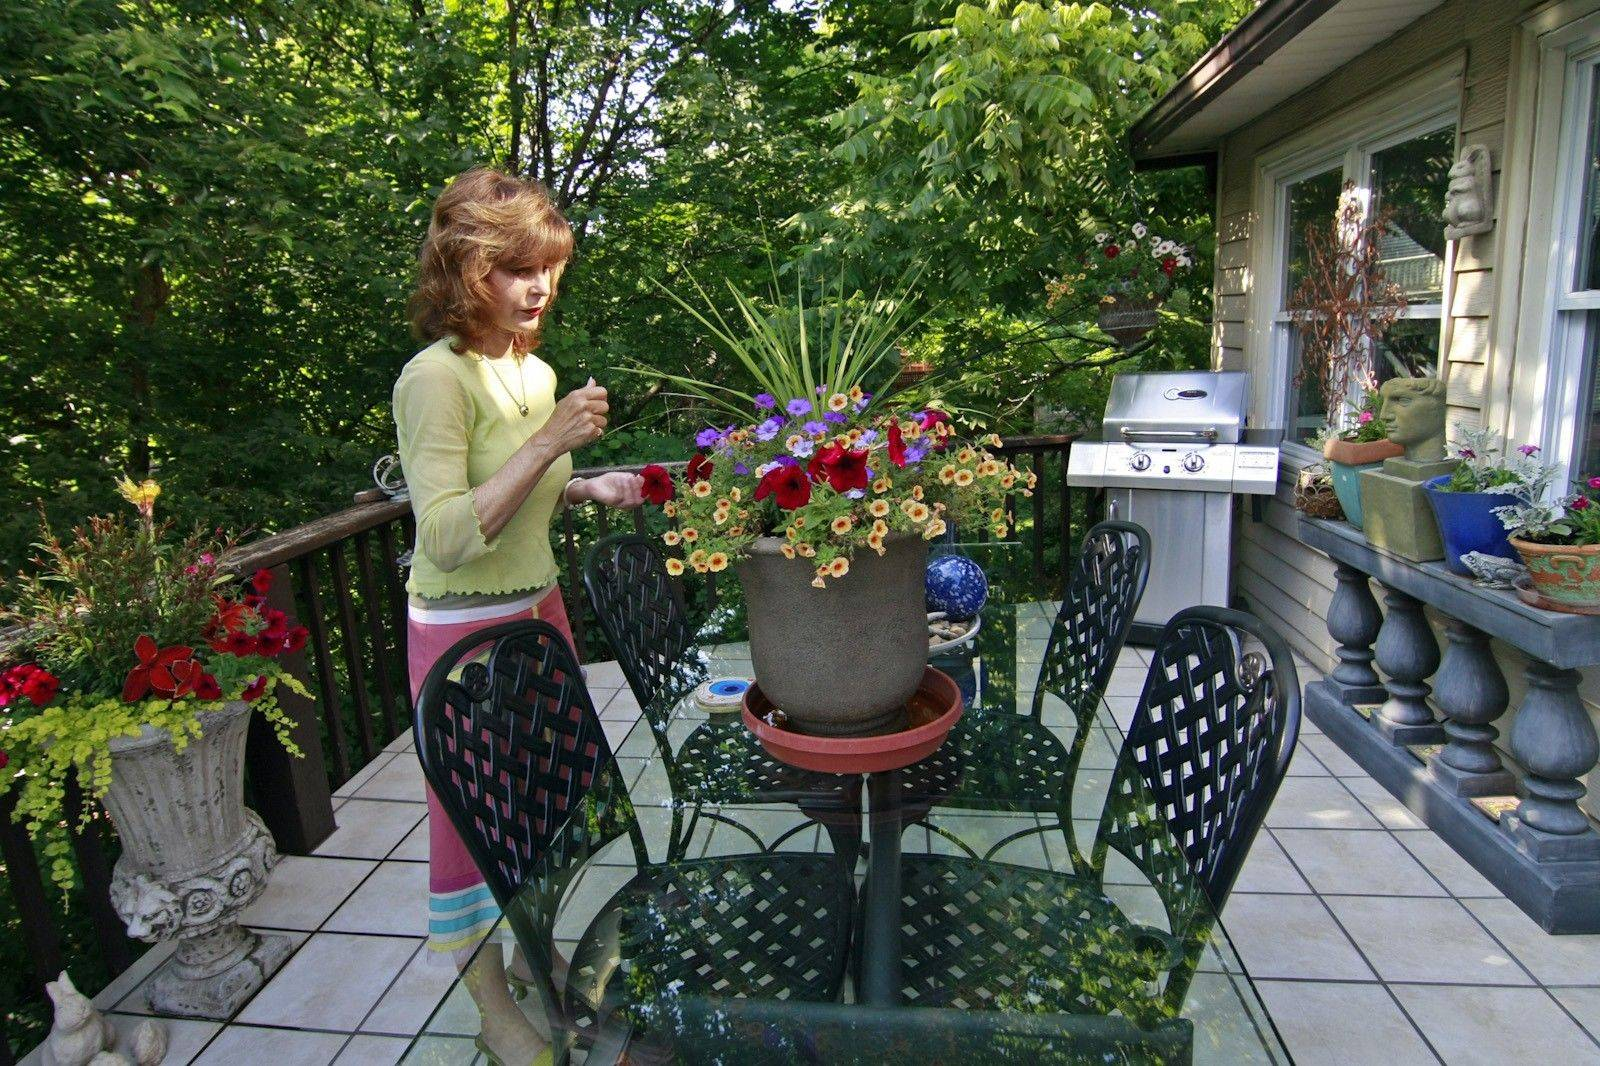 Christine Clifford arranges a bouquet on her home's balcony, an area ideal for entertaining.